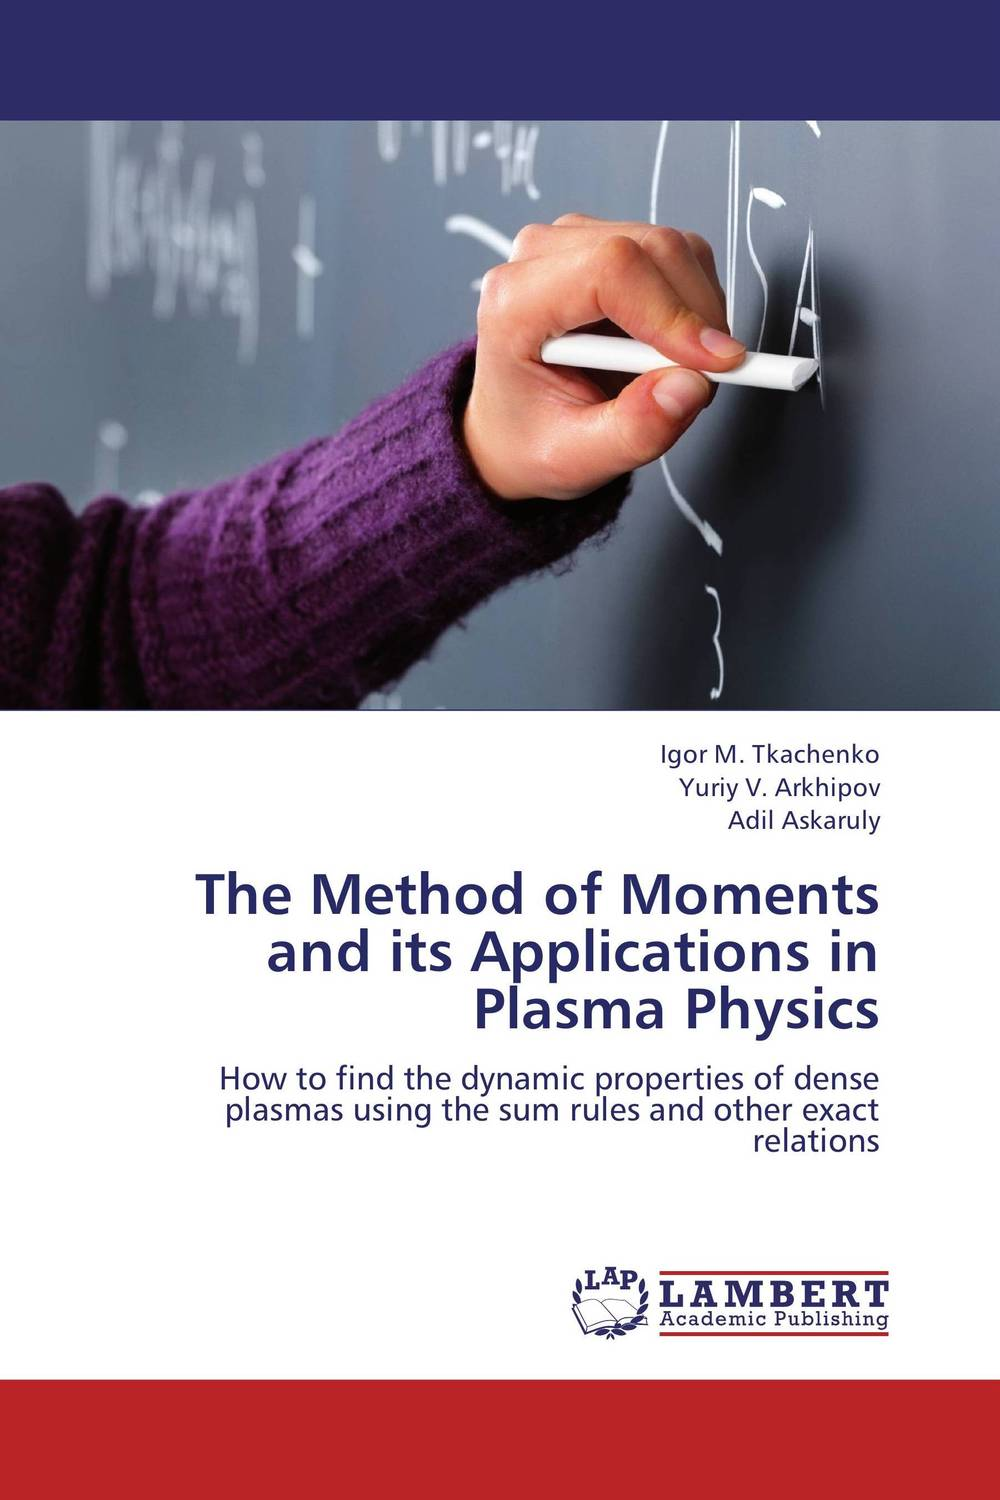 The Method of Moments and its Applications in Plasma Physics gregorian masters of chant moments of peace in ireland